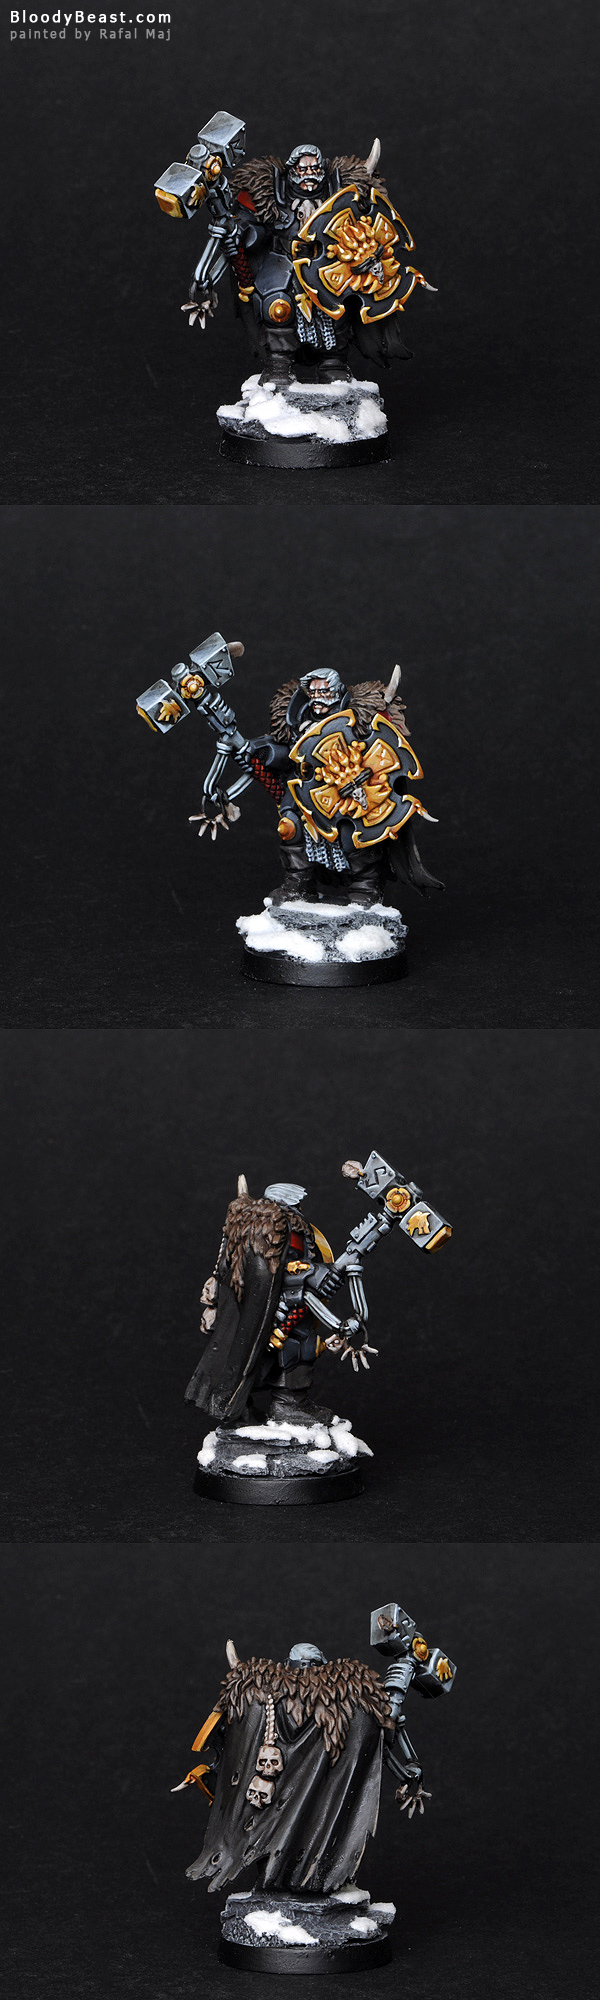 Space Wolves Lone Wolf with Hammer and Shield painted by Rafal Maj (BloodyBeast.com)